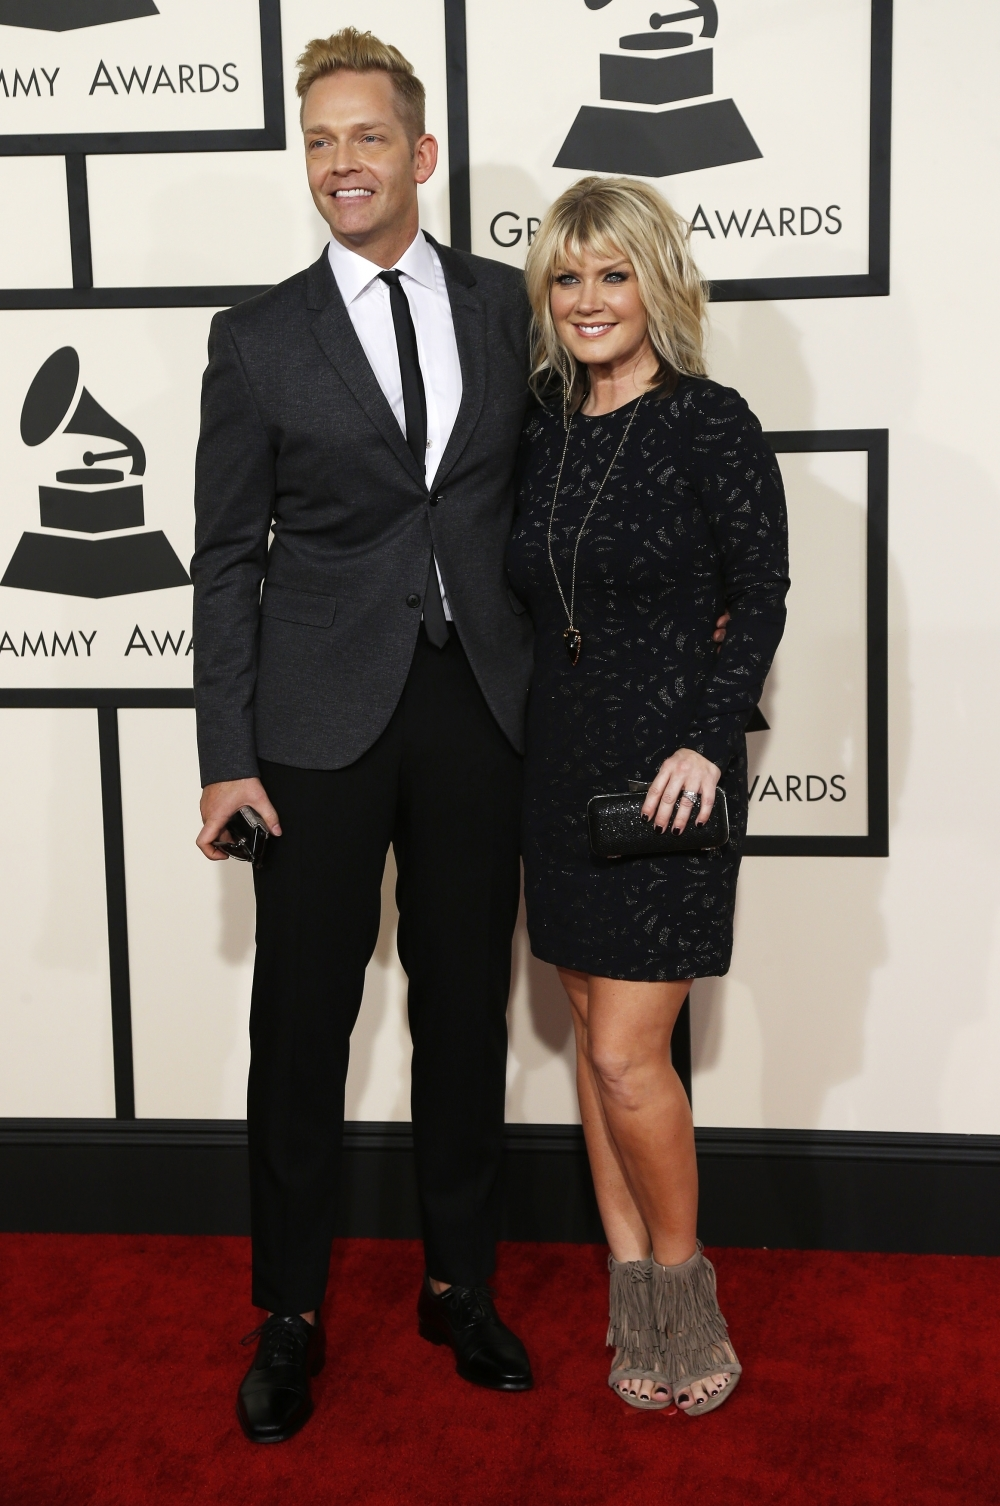 Natalie Grant says she and husband lost thousands of followers after speaking out against racism